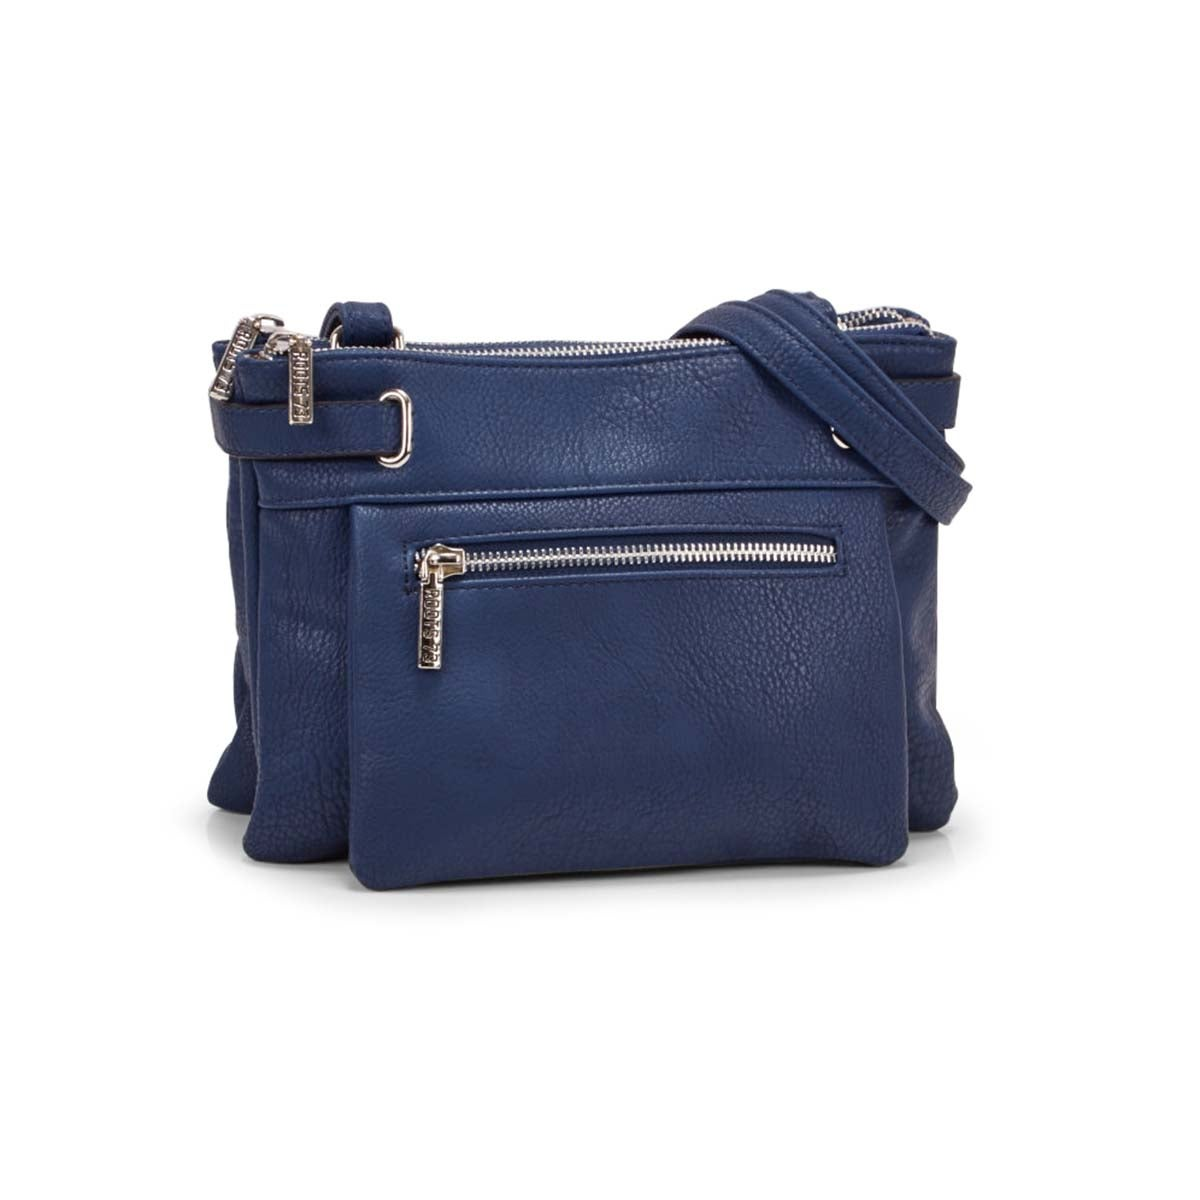 Lds navy 2 compartment crossbody